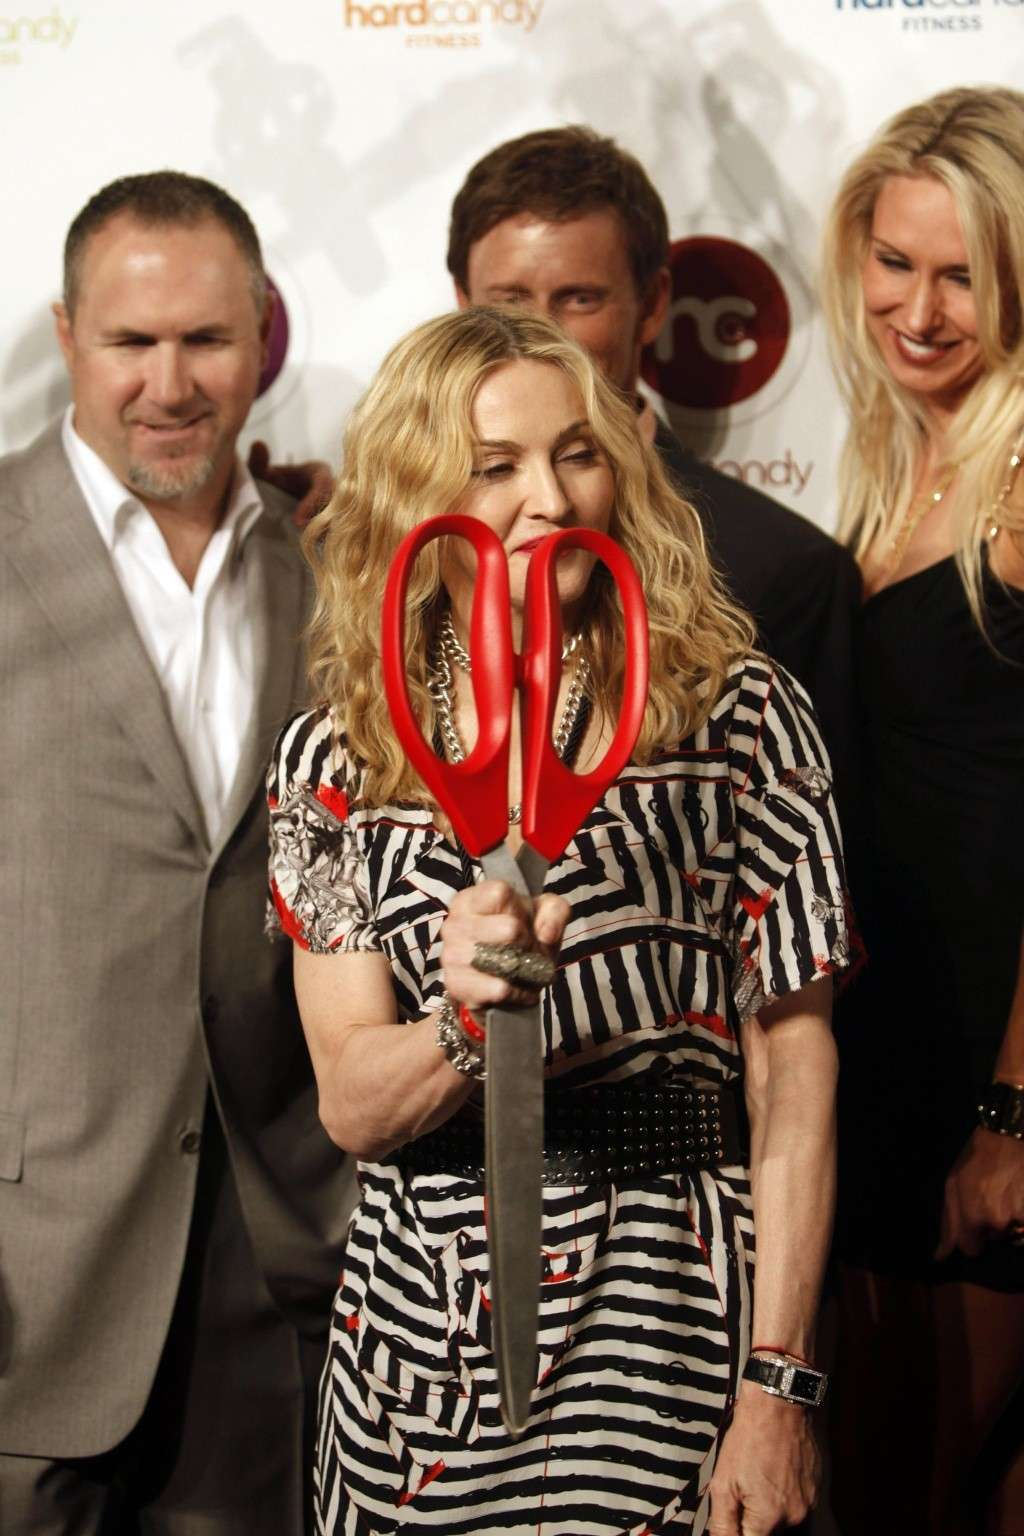 Nov 29, 2010 - Madonna - At the opening of the first Hard Candy Fitness Center in Mexico Forum_64